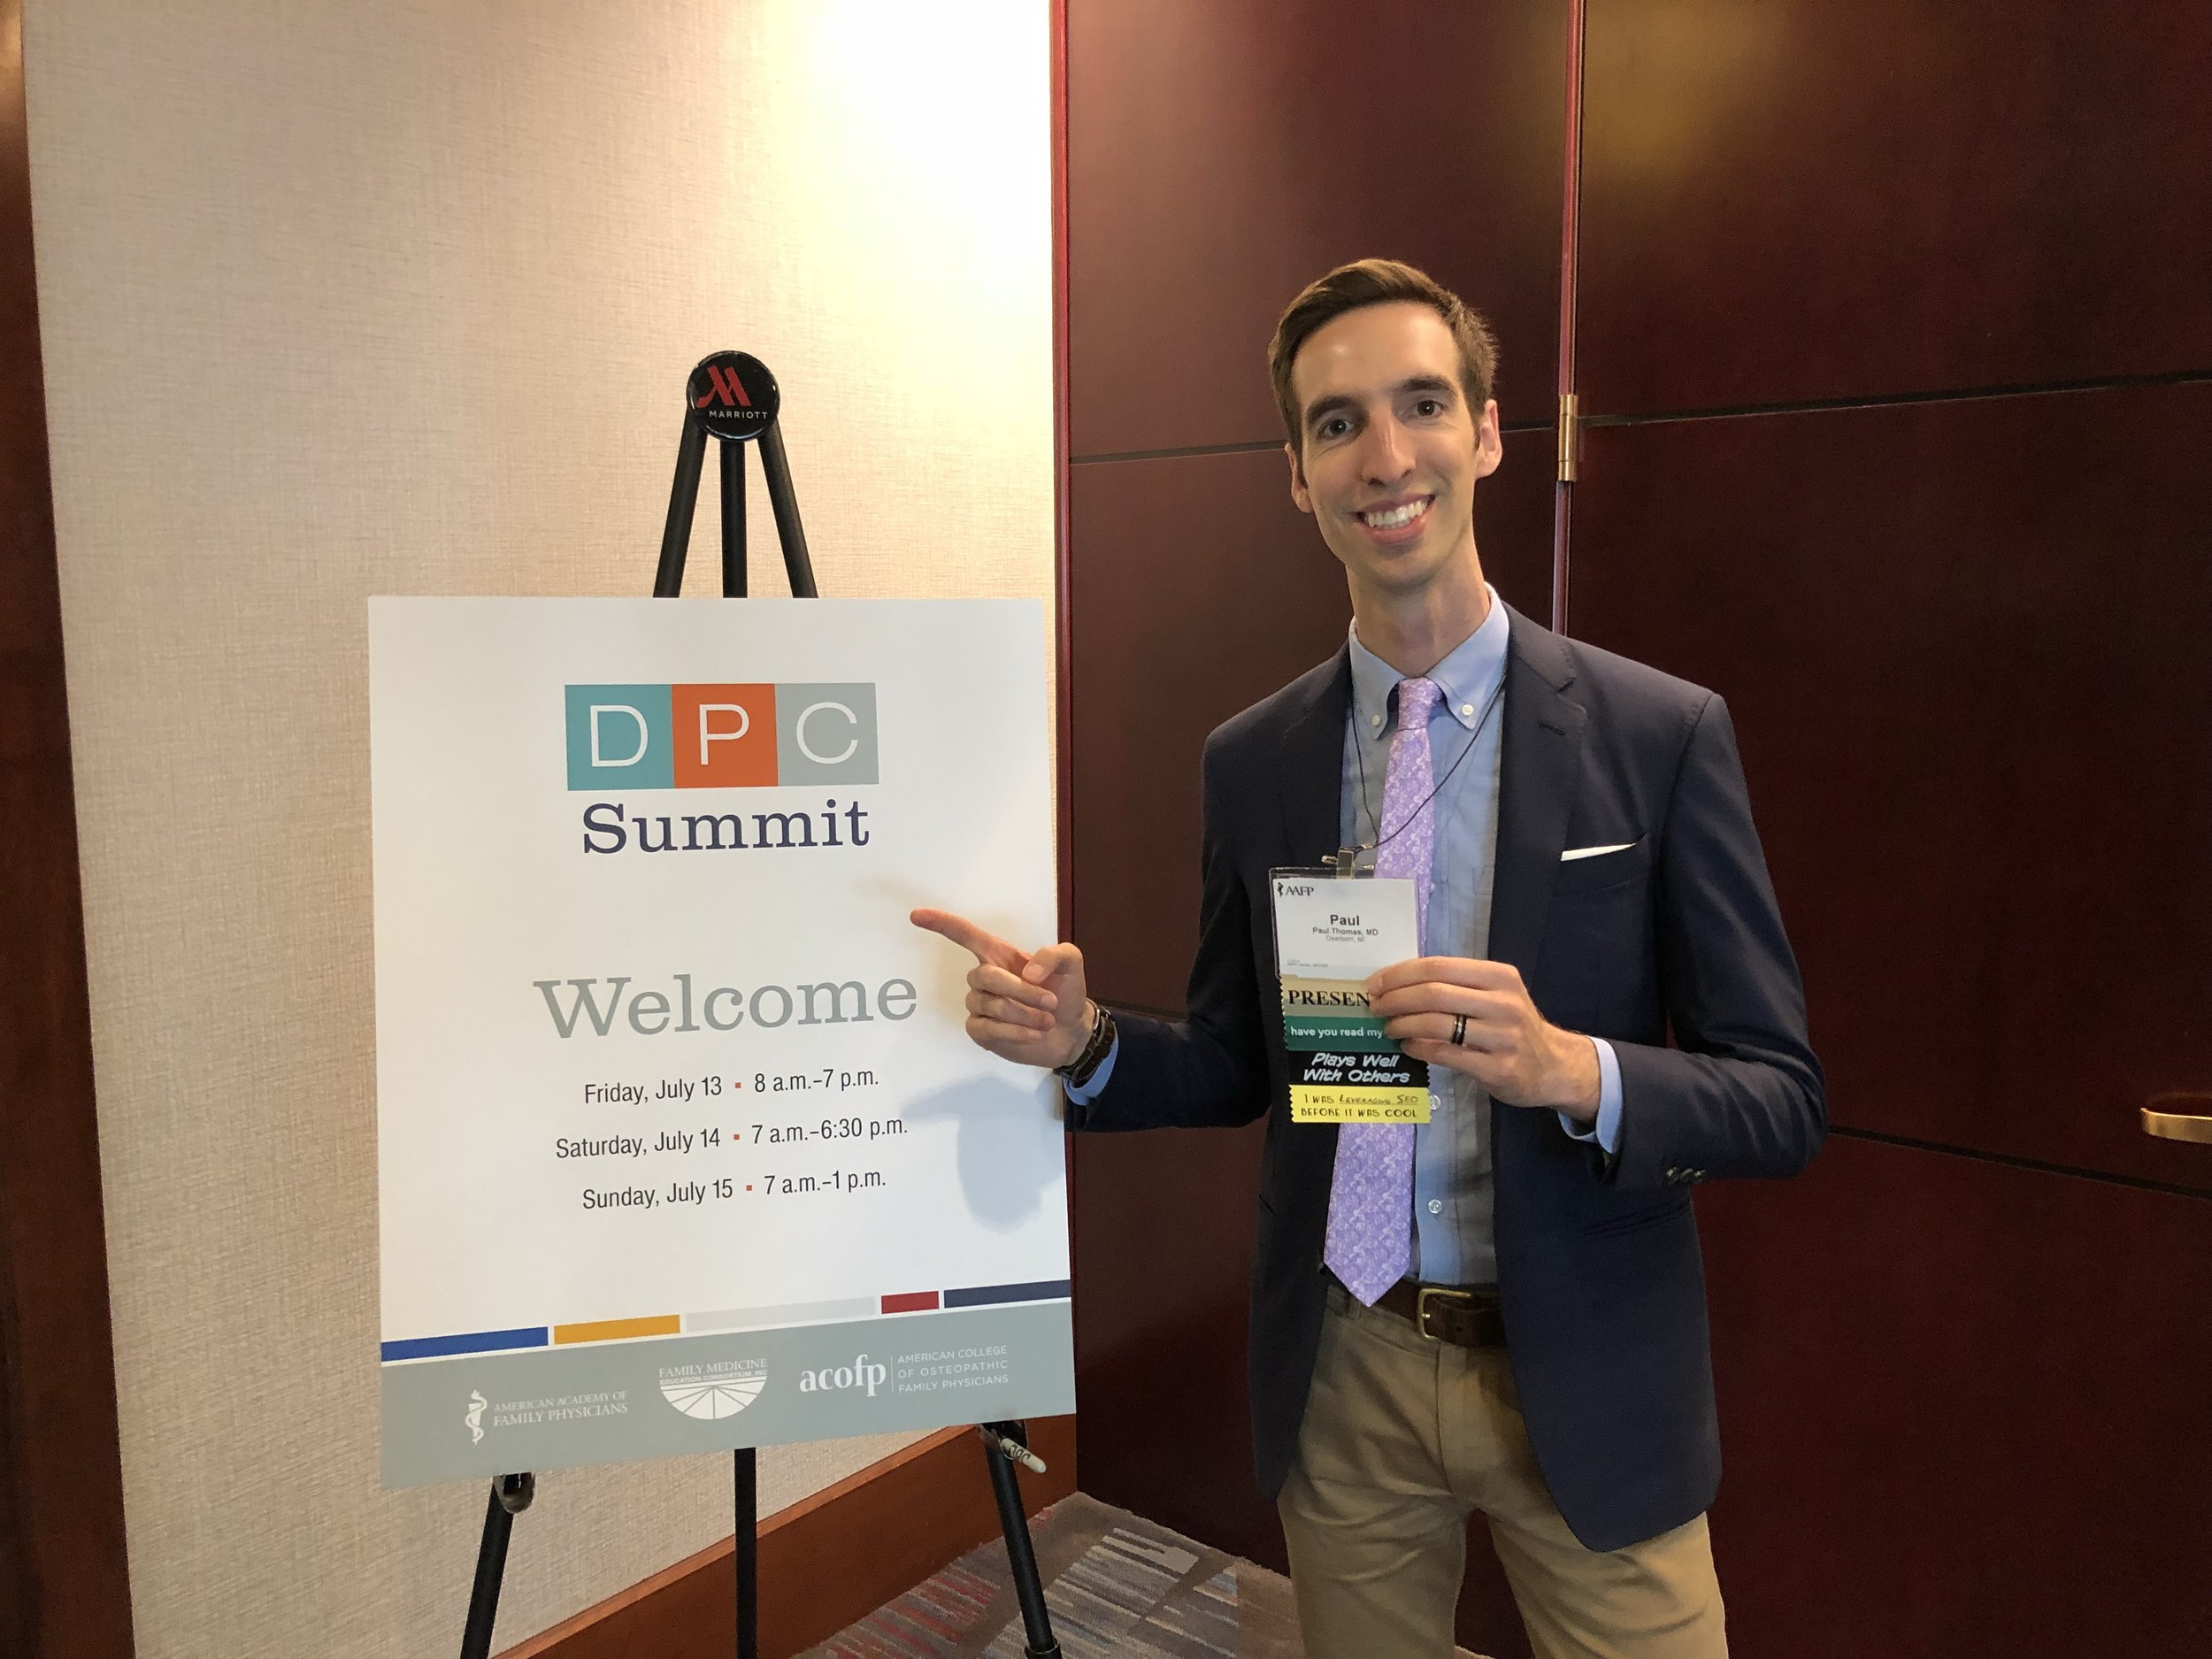 2018.07.15 AAFP DPC Summit 2018 DPC Hustles Harder with Dr. Paul Thomas on stage.jpg